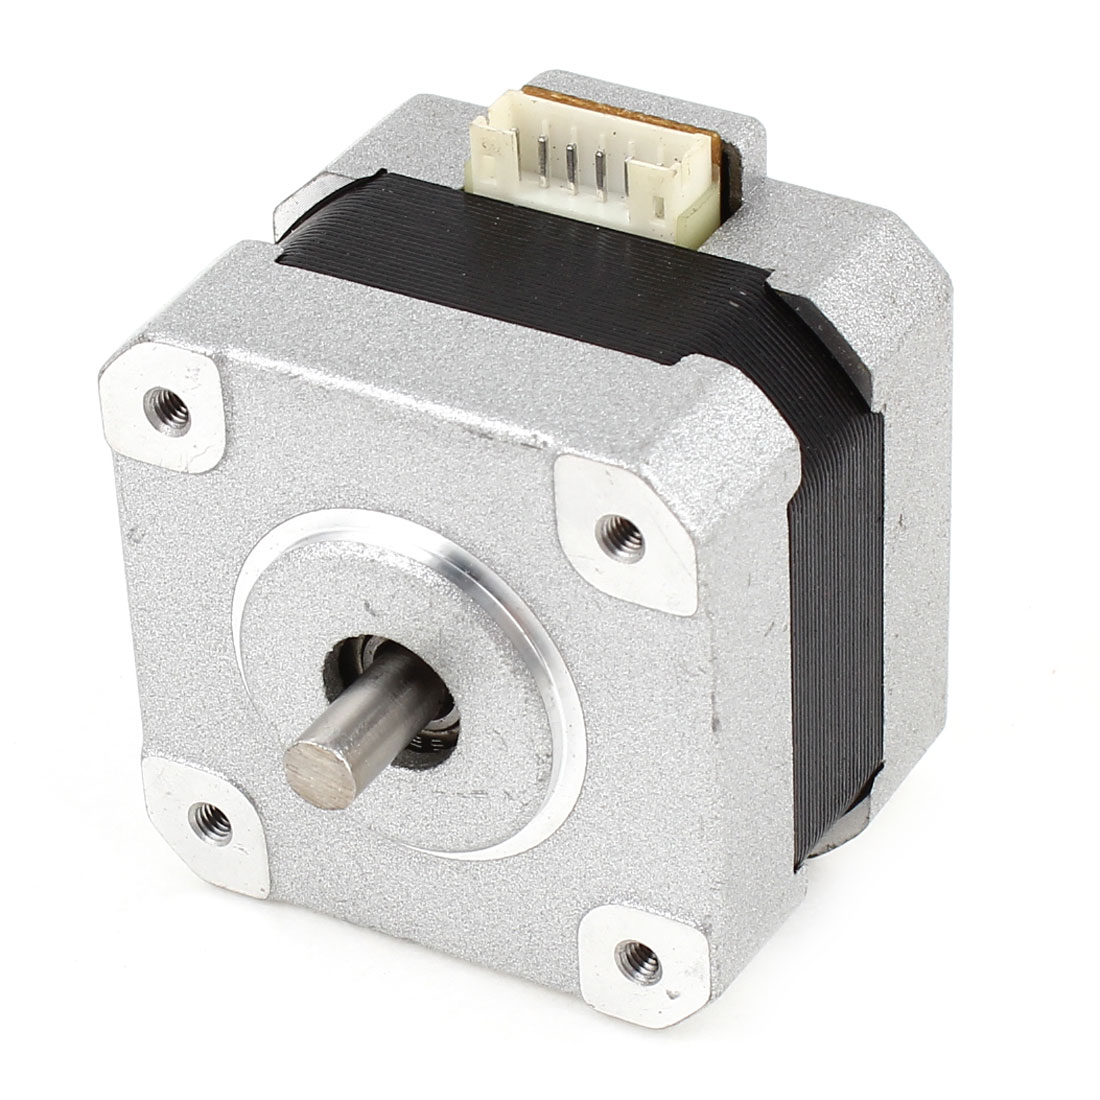 CNC Nema 17 Step Stepping Stepper Motor DC 12V 0.4A 42mm